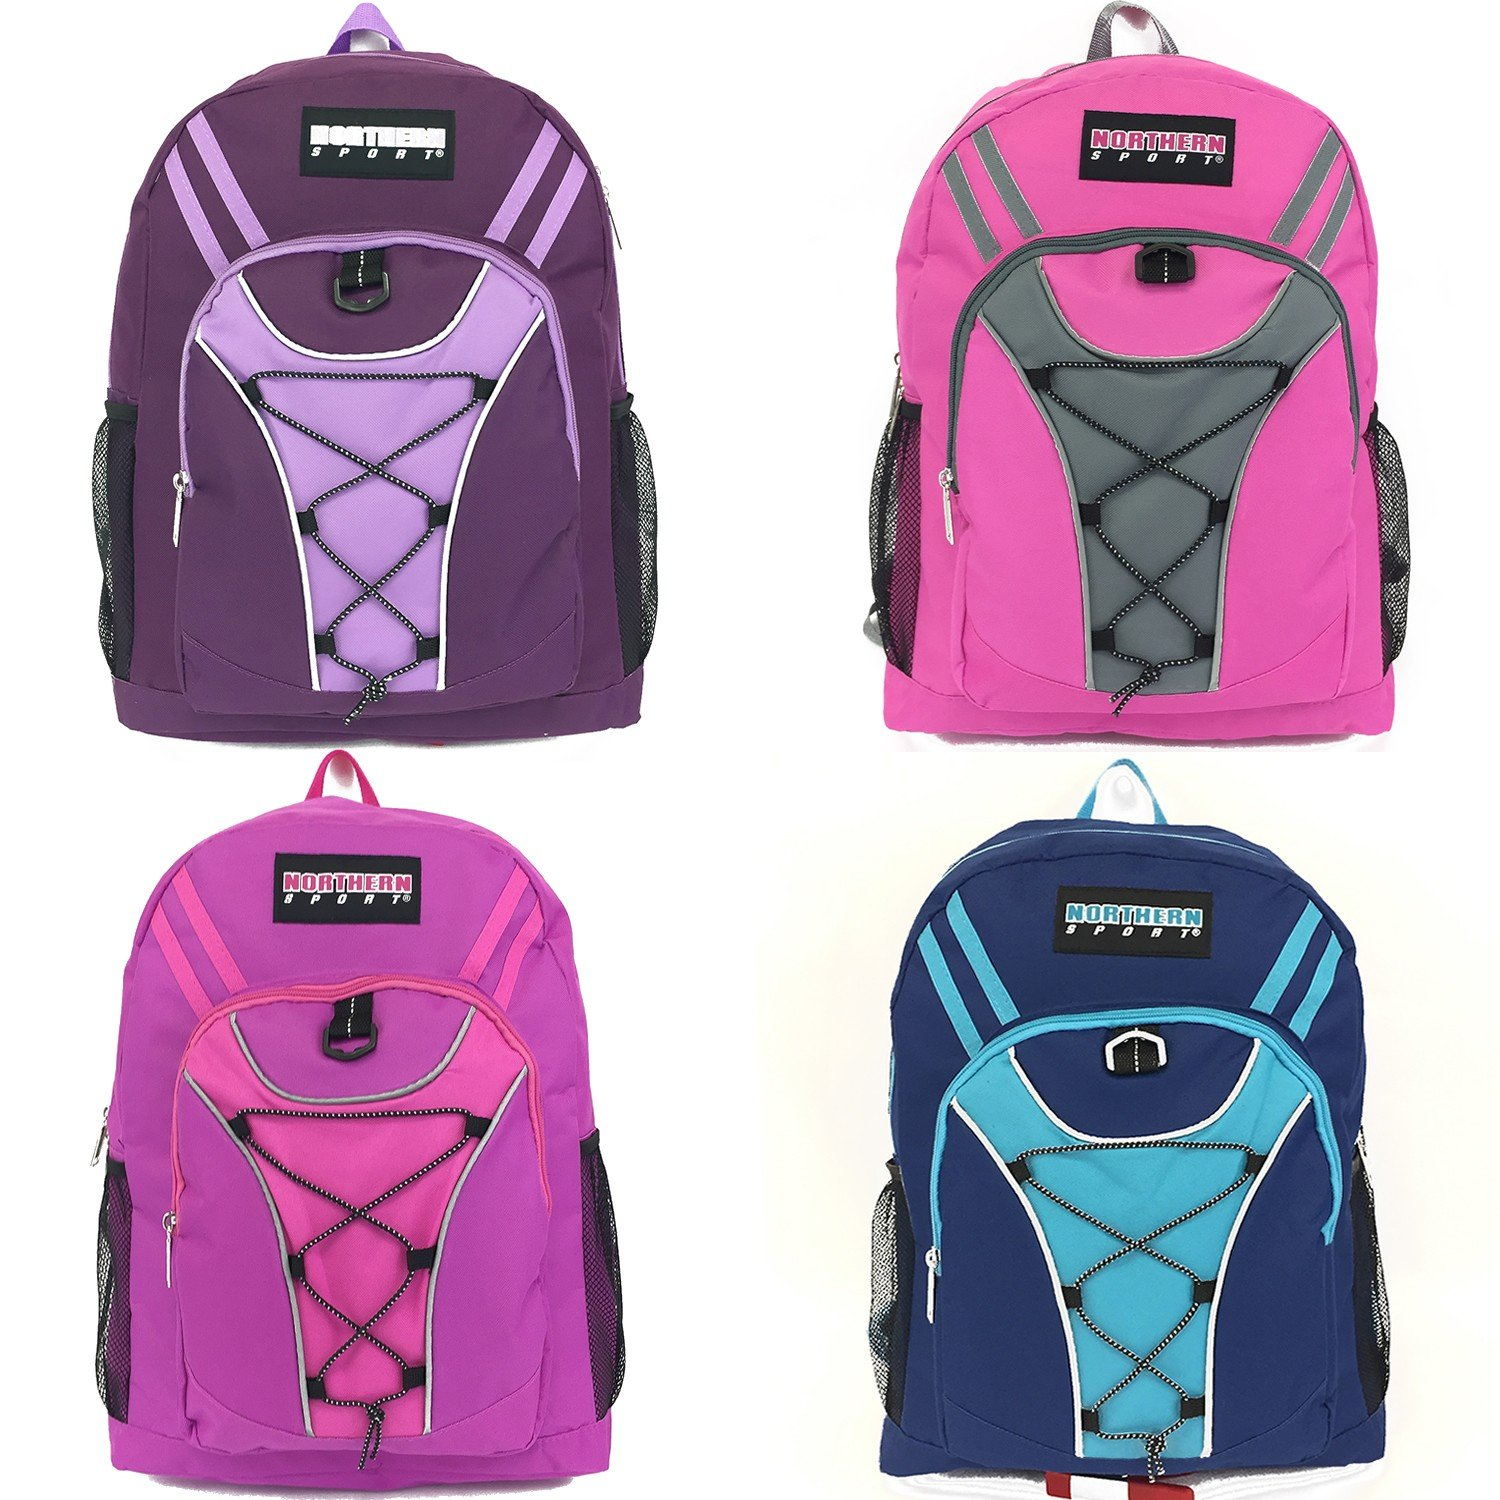 Wholesale Girls 19'' Bungee Design Backpack In 4 Assorted Colors - Case of 24 by Northern Sport